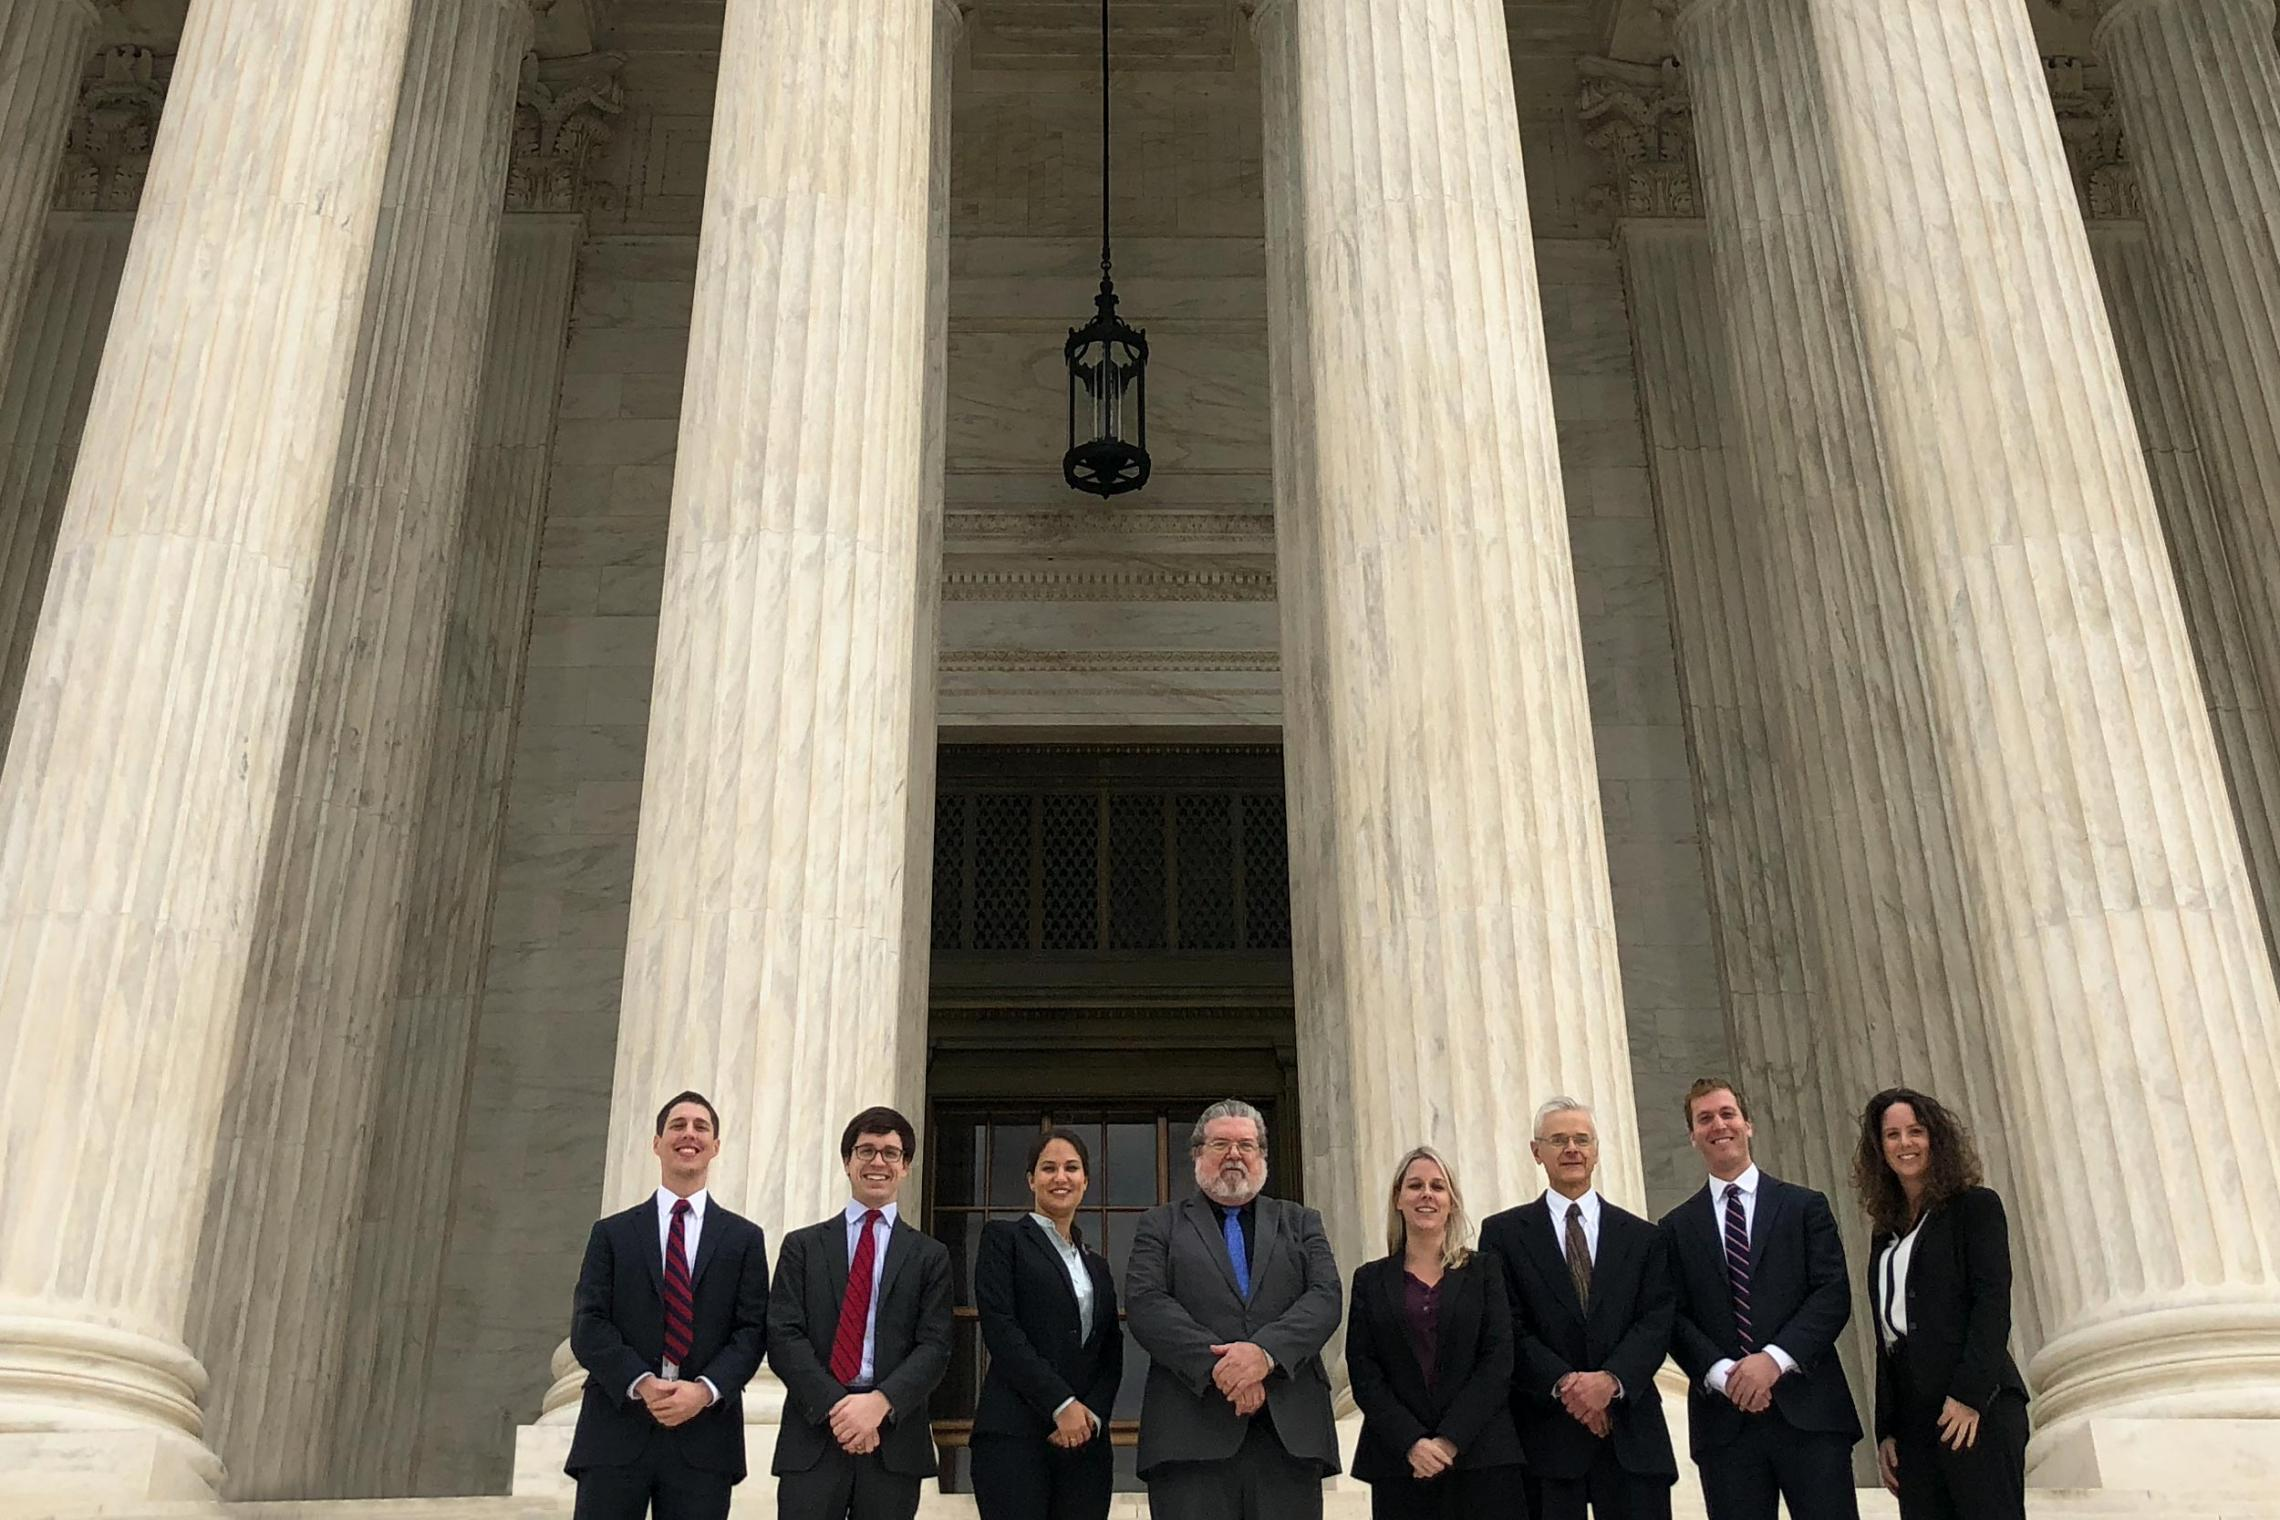 The UVA SCOTUS Clinic poses for a photo on the steps of the Supreme Court. Photo University of Virginia.